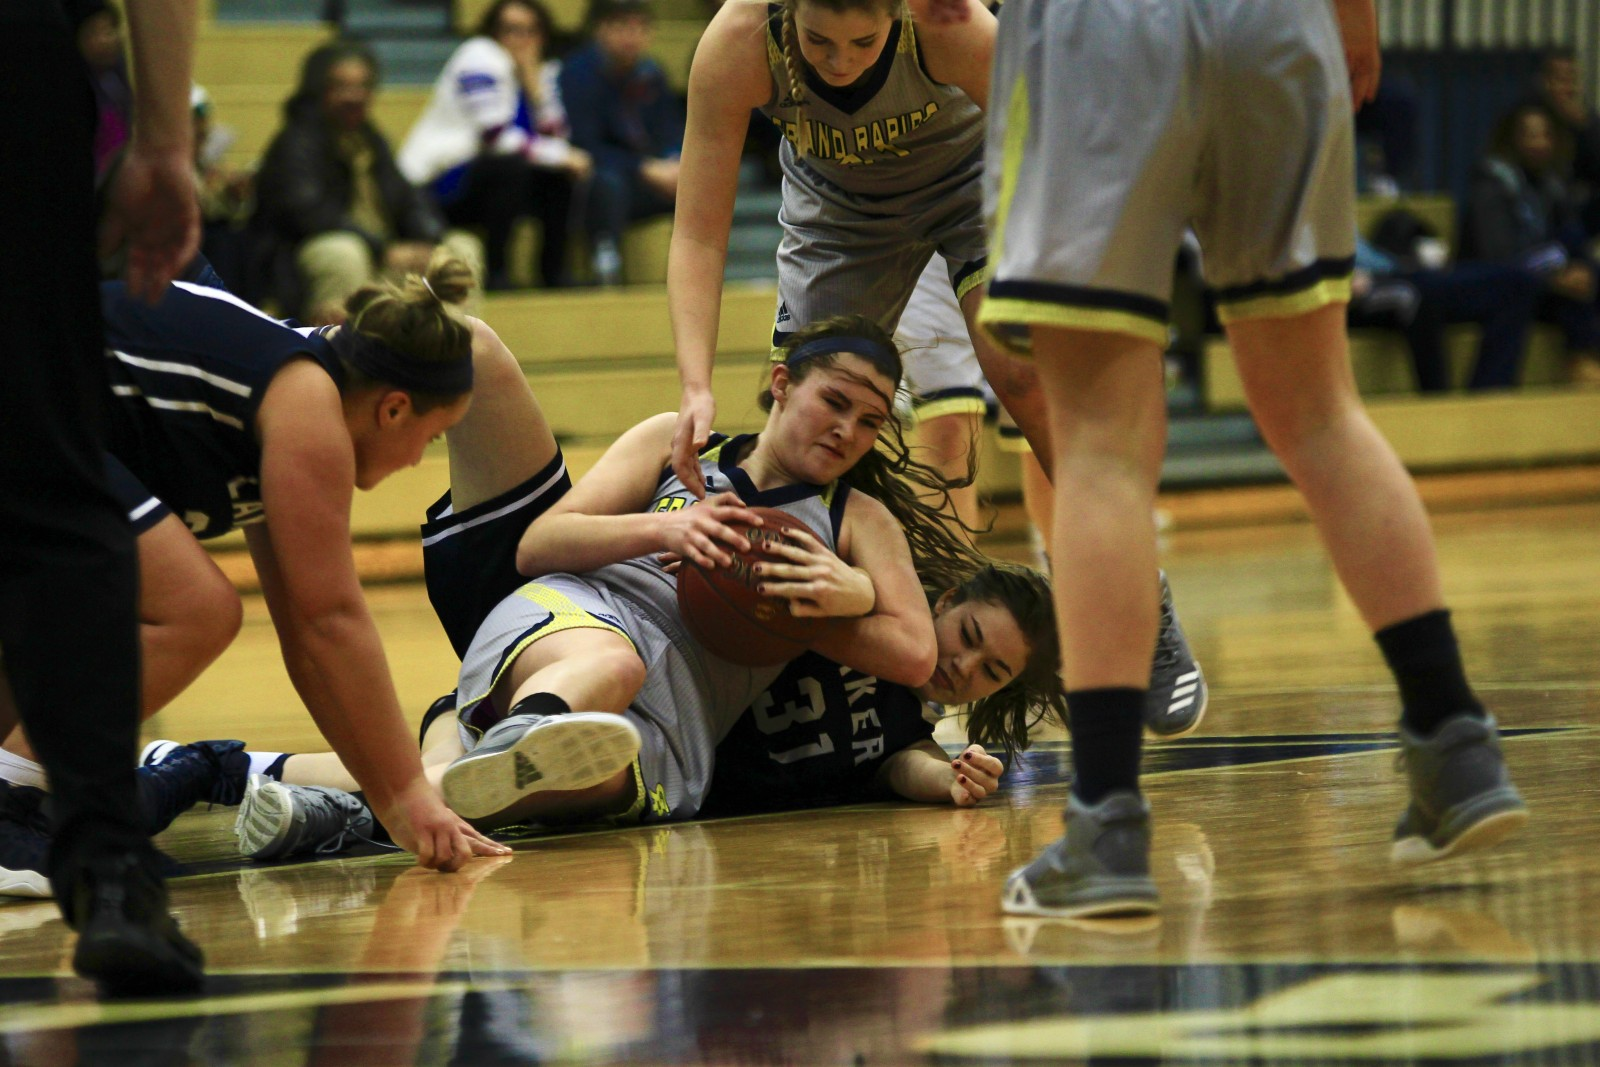 Freshman Guard, #13, Josie Manion dives and fights for the loose ball.